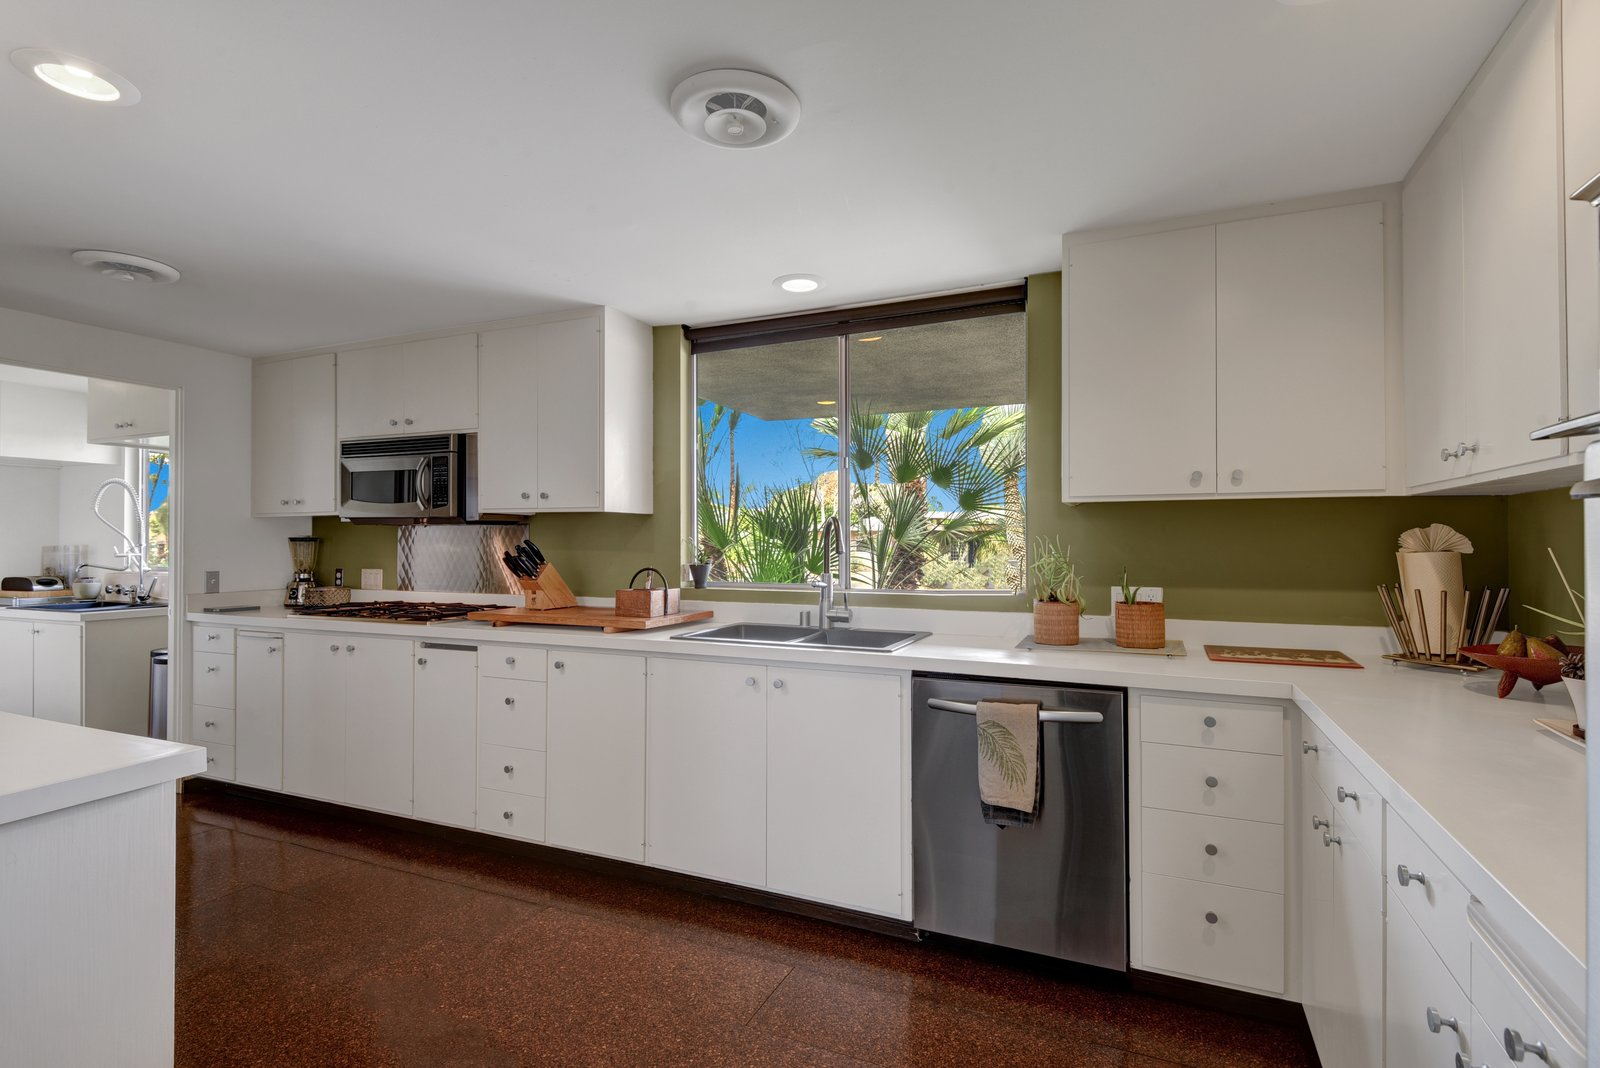 The kitchen and prep kitchen feature stainless steel appliances, commercial fixtures, and cork floors.